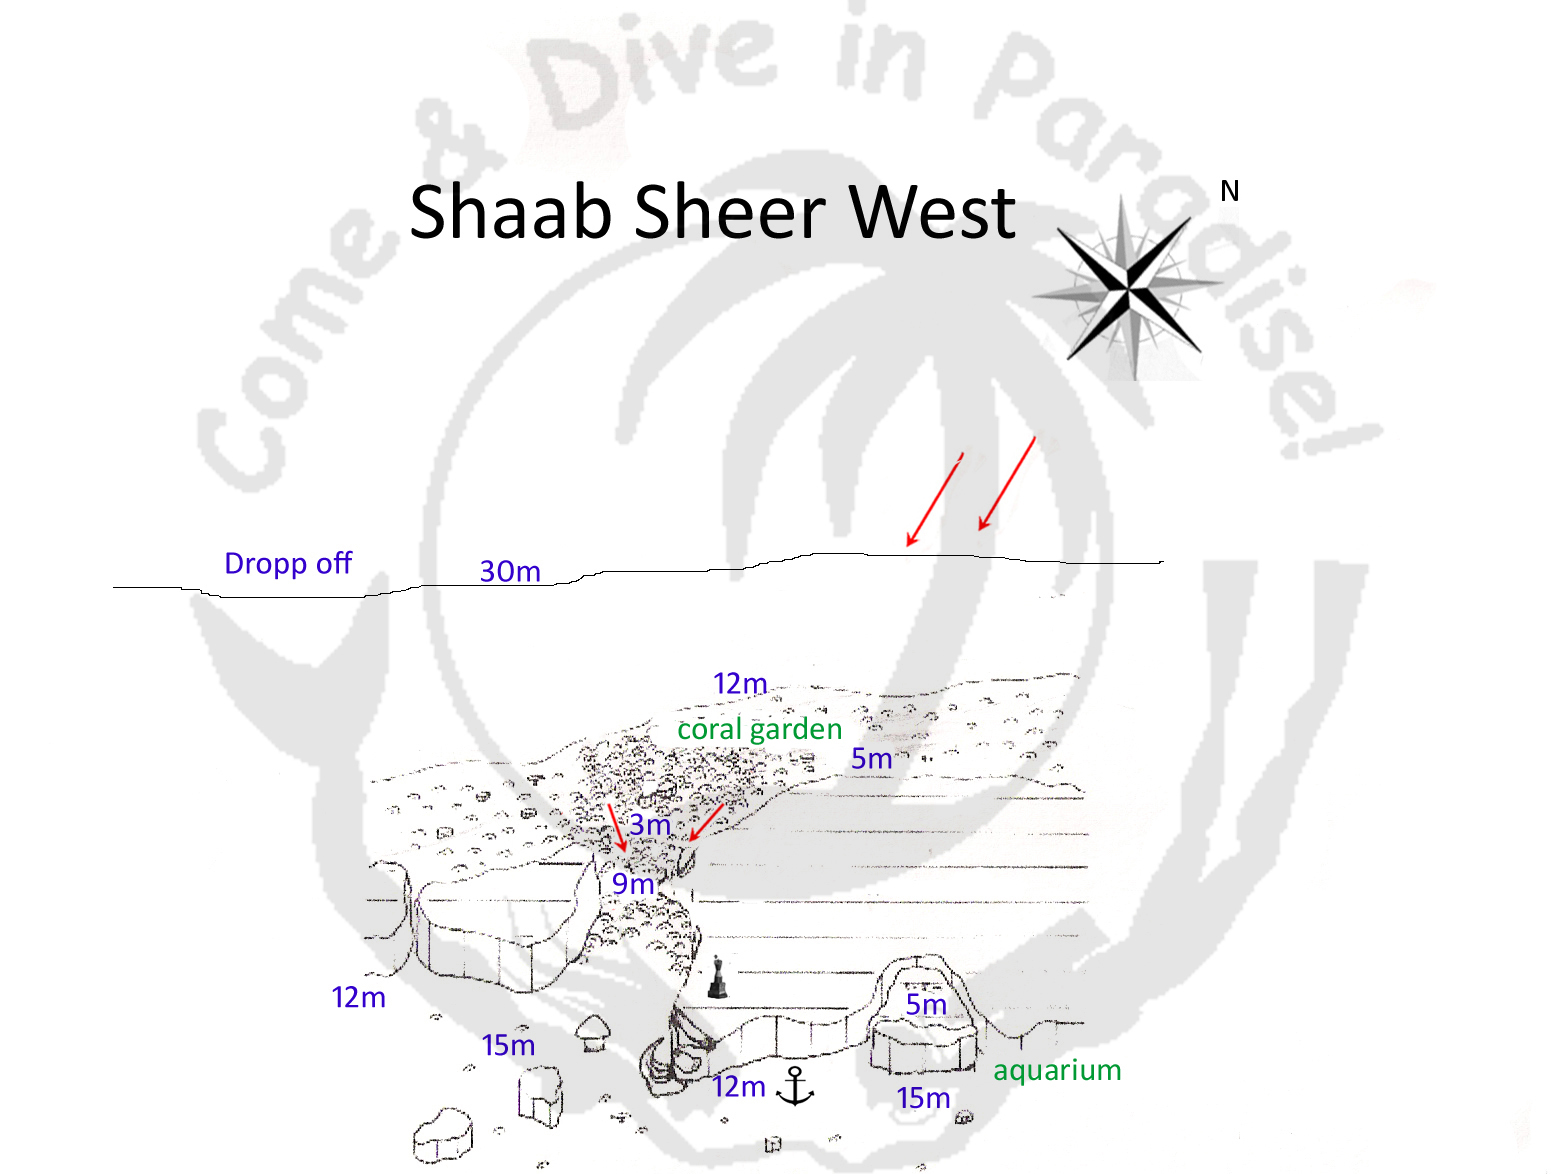 en_shaab_sheer_west.jpg